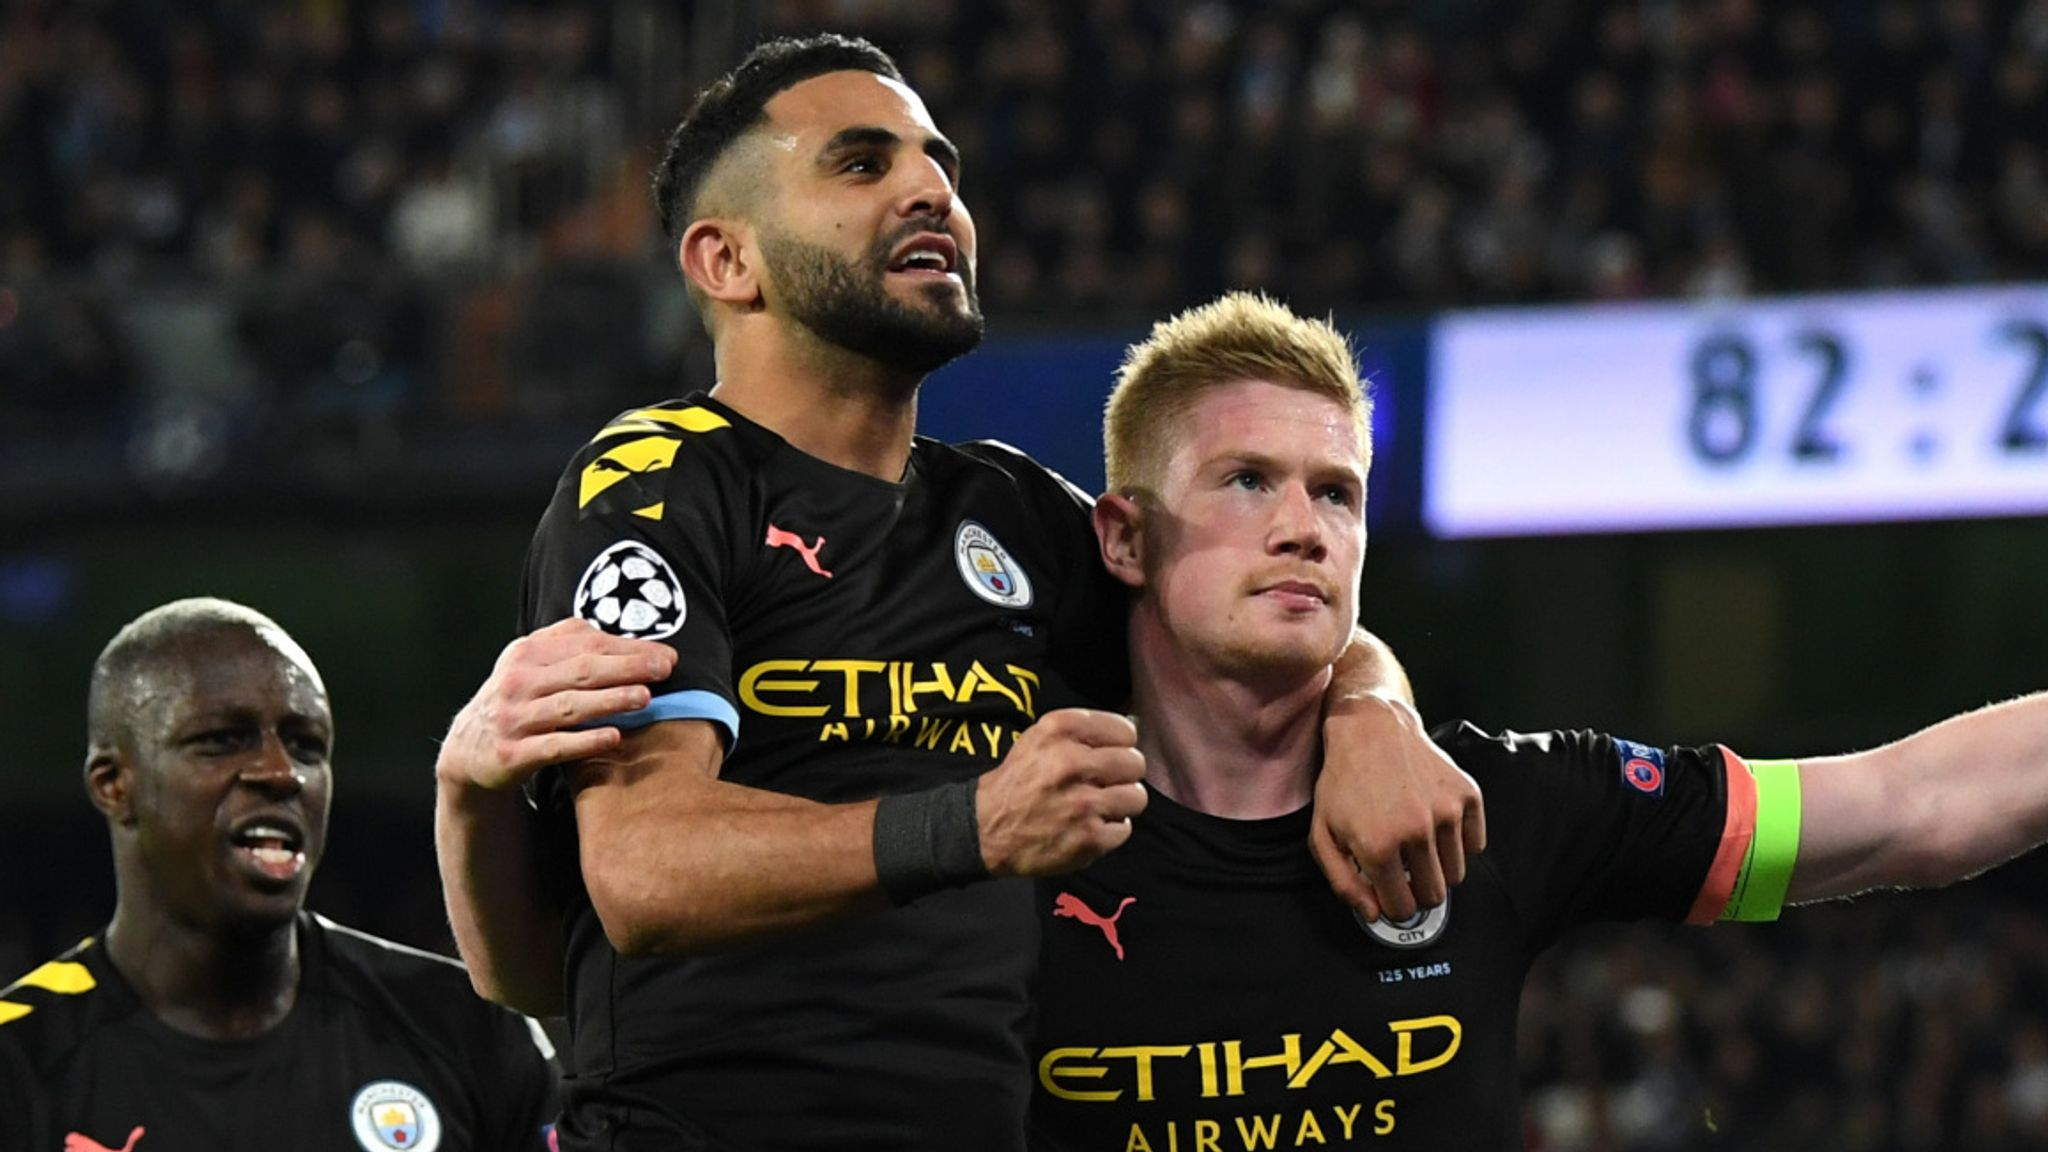 Manchester City Free To Play In UCL Next Season As CAS Overturns Its Two-year Ban From European Competition